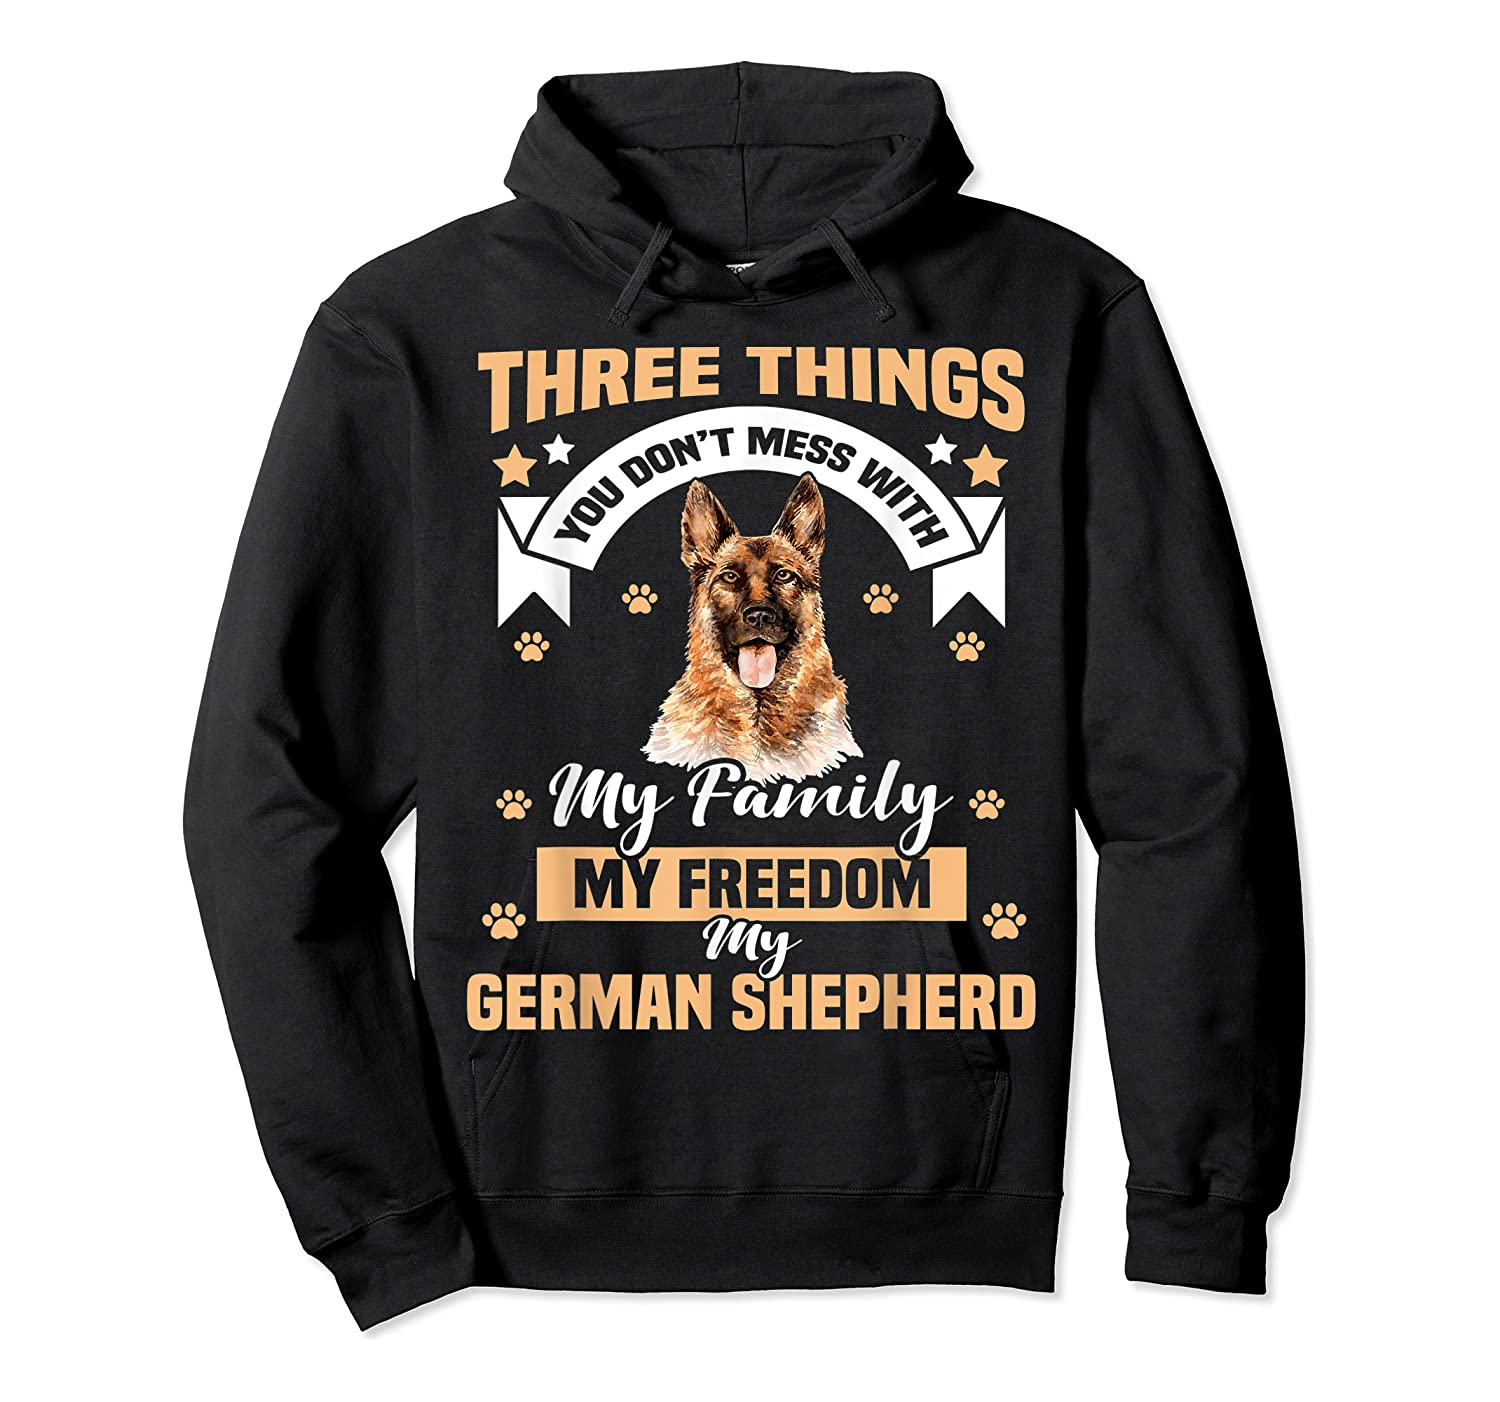 Three Things You Don't Mess With My German Shepherd T-shirt Unisex Pullover Hoodie